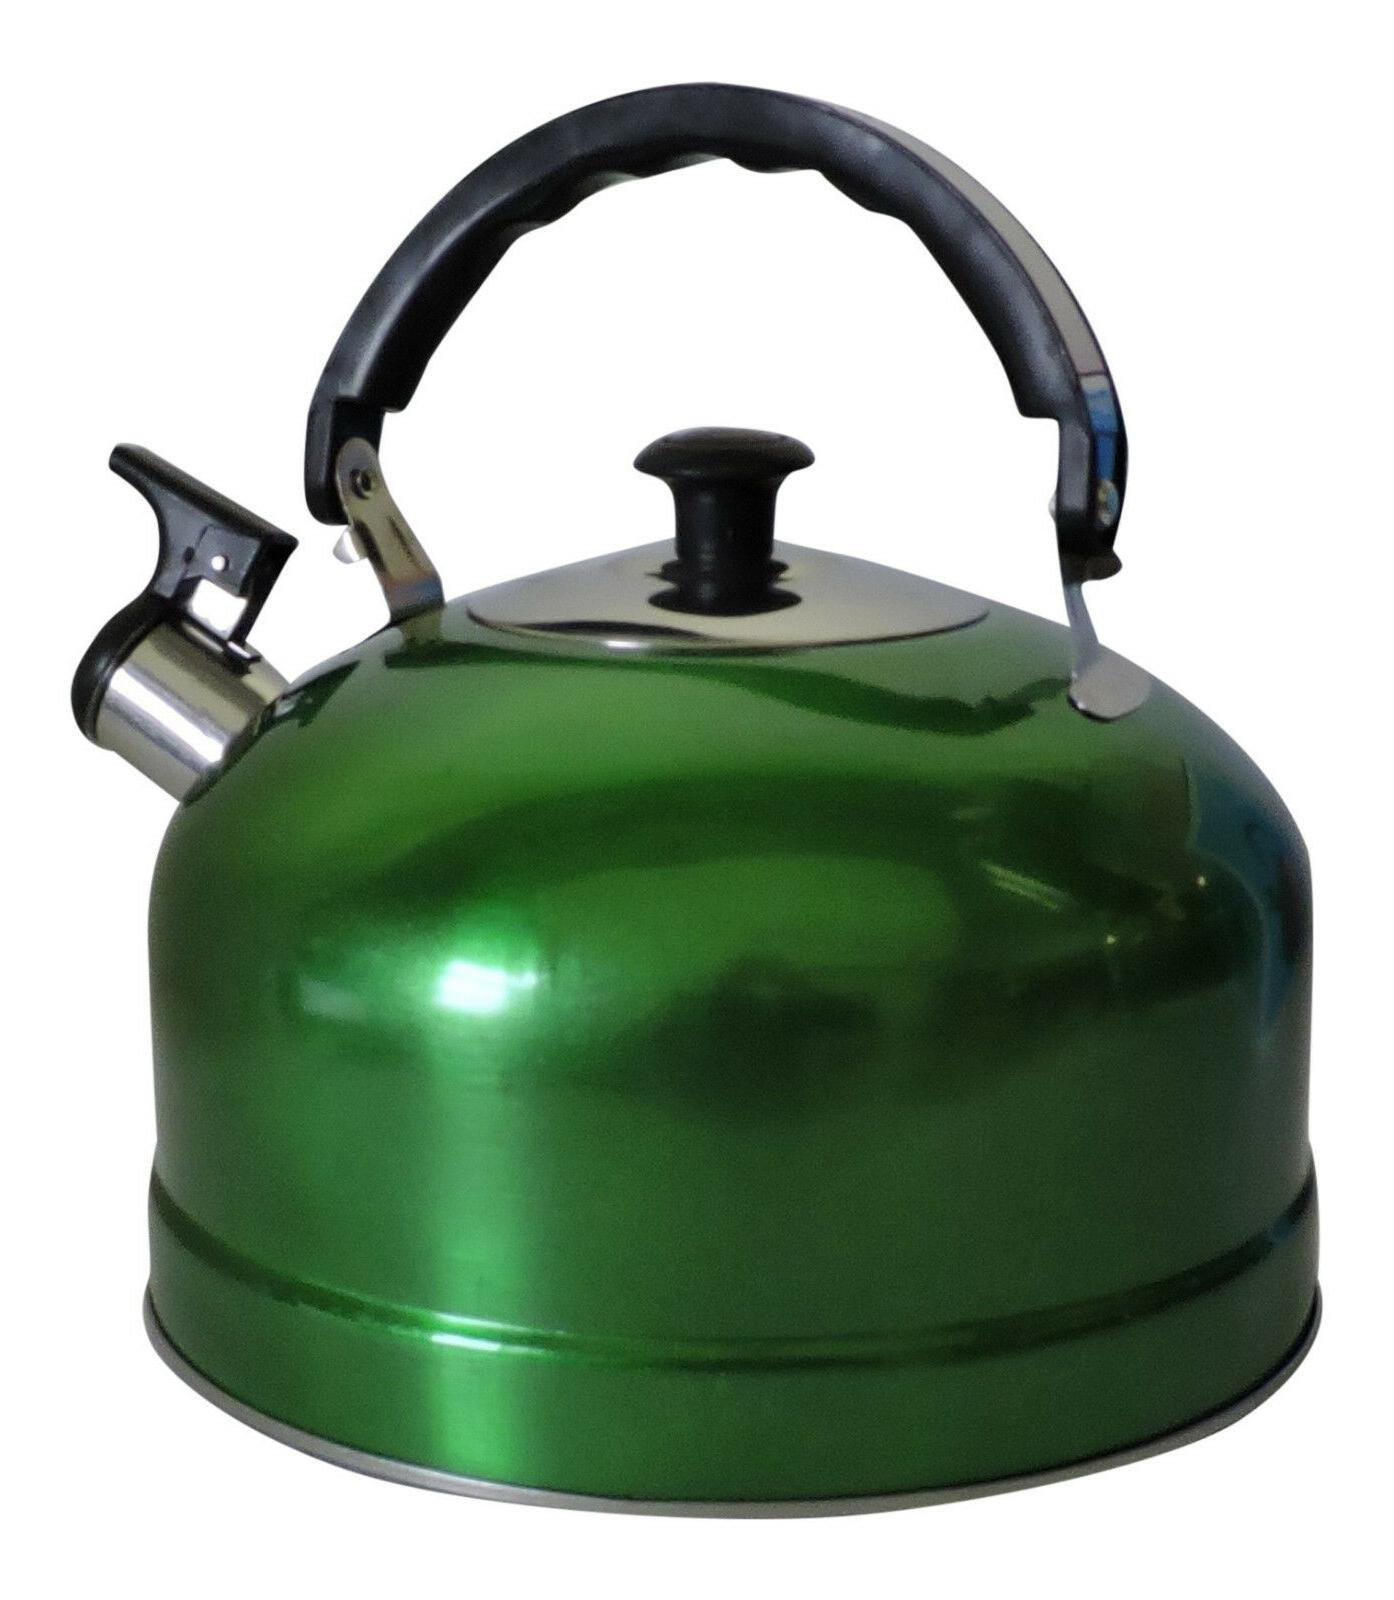 stainless steel whistling kettle water